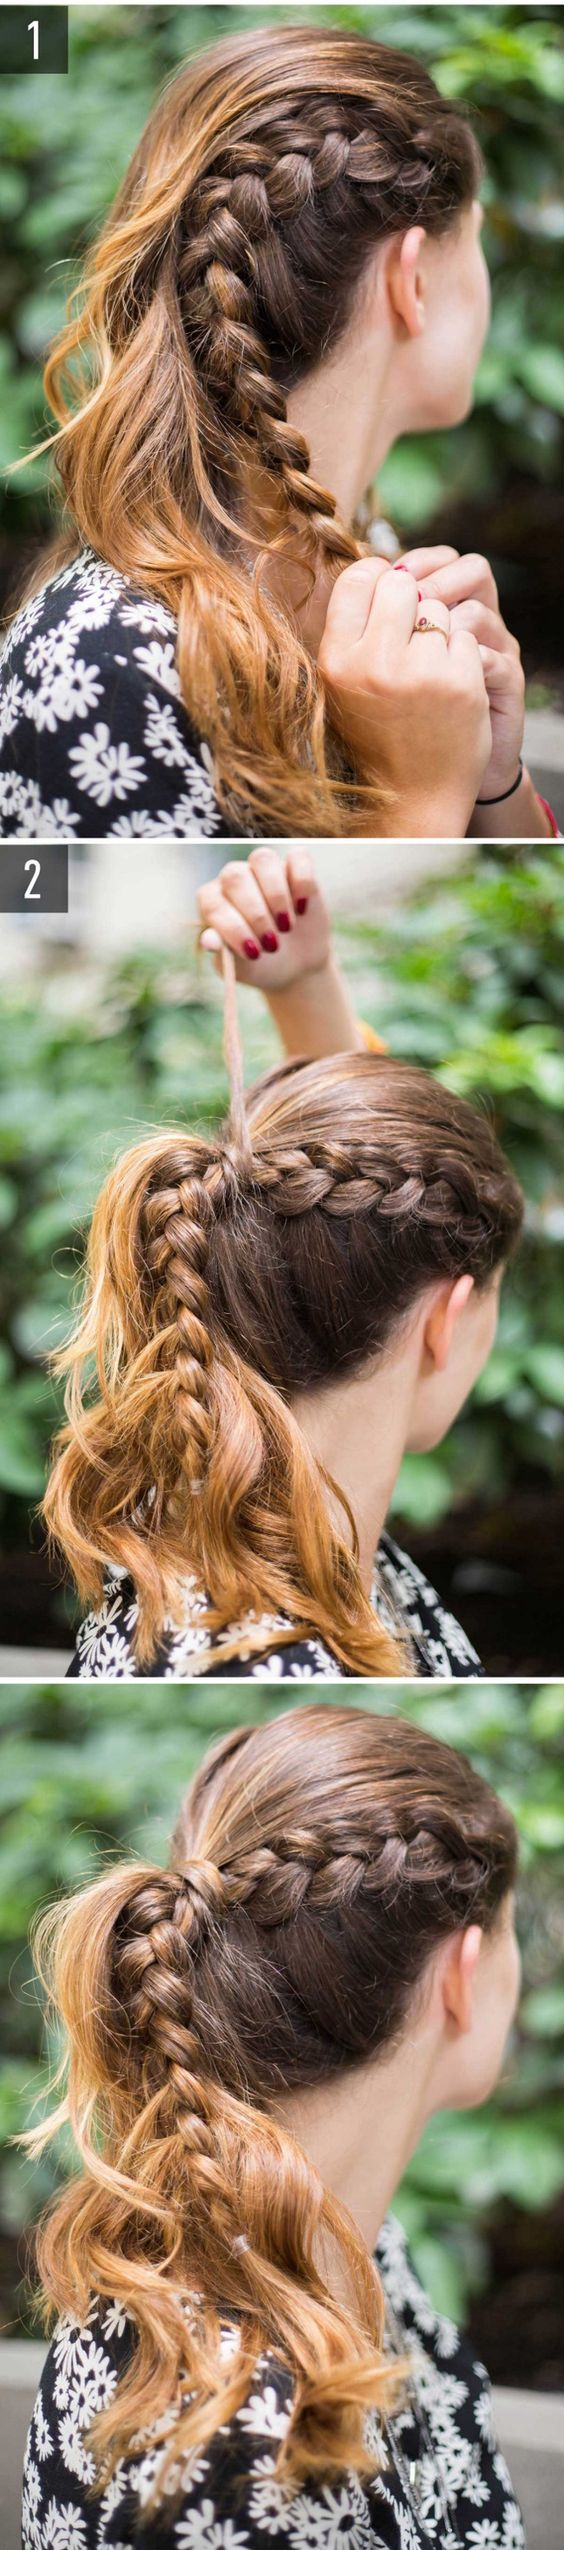 Braid Hairstyles A selection of your hairstyle To suit you 2017 7